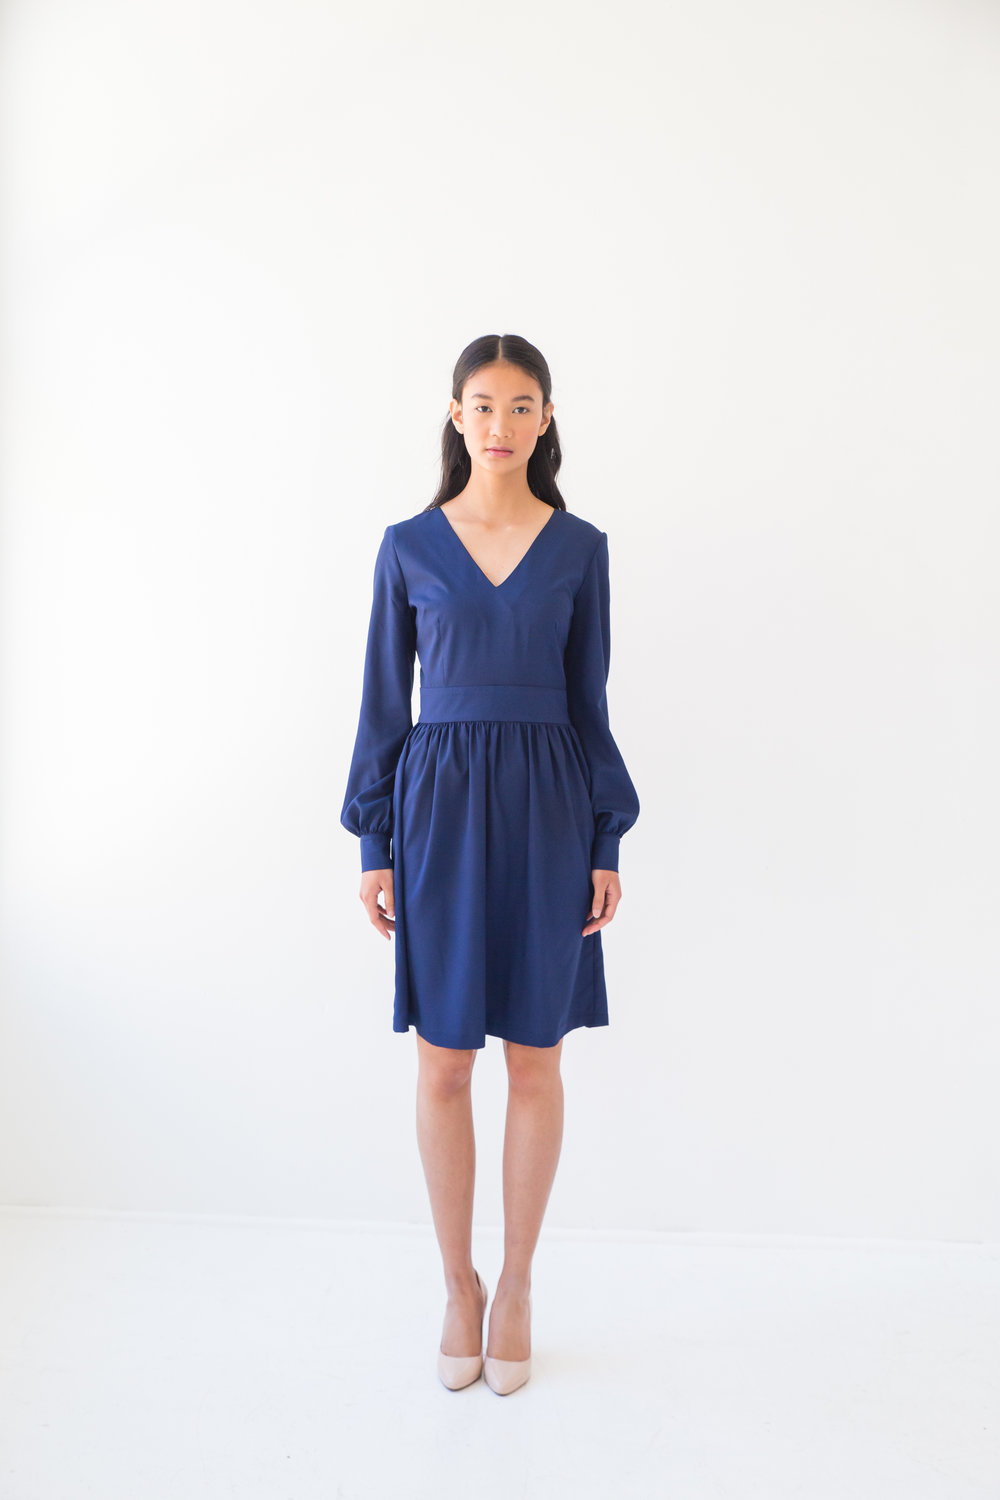 Long and Puffy Sleeve Dress